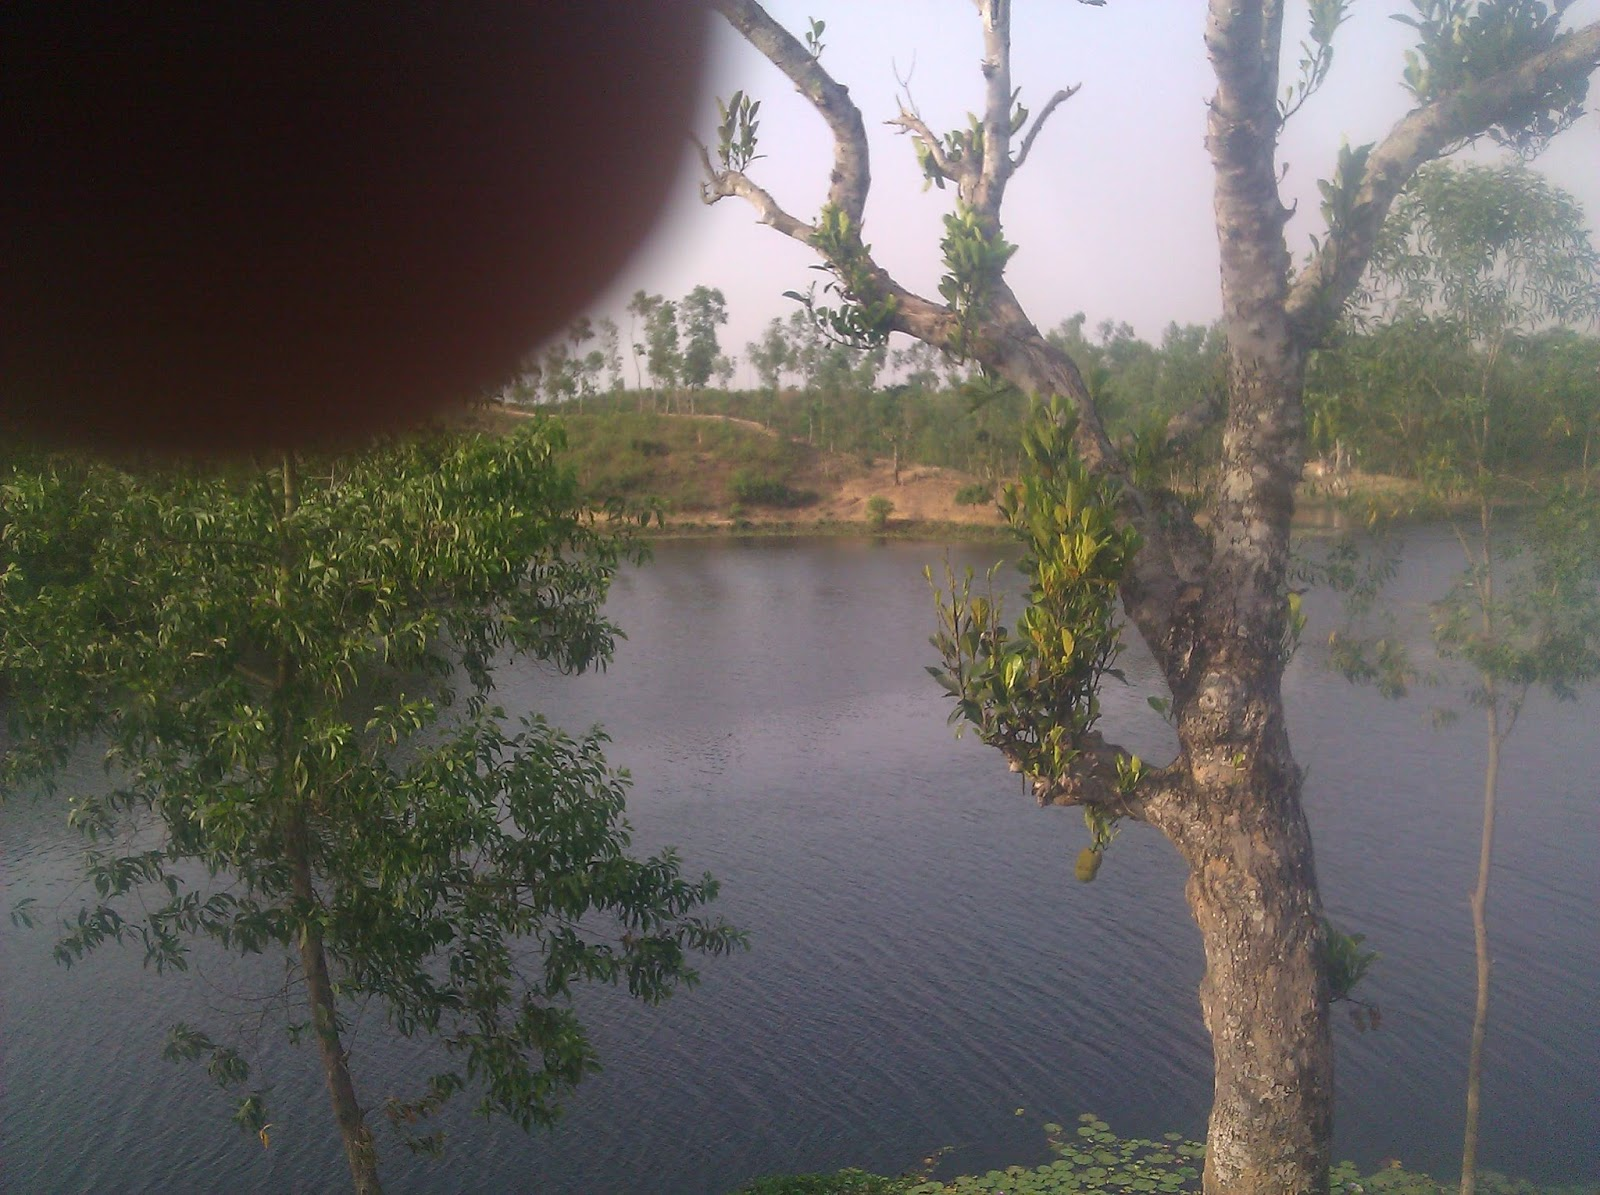 Bussiness environment in bangladesh